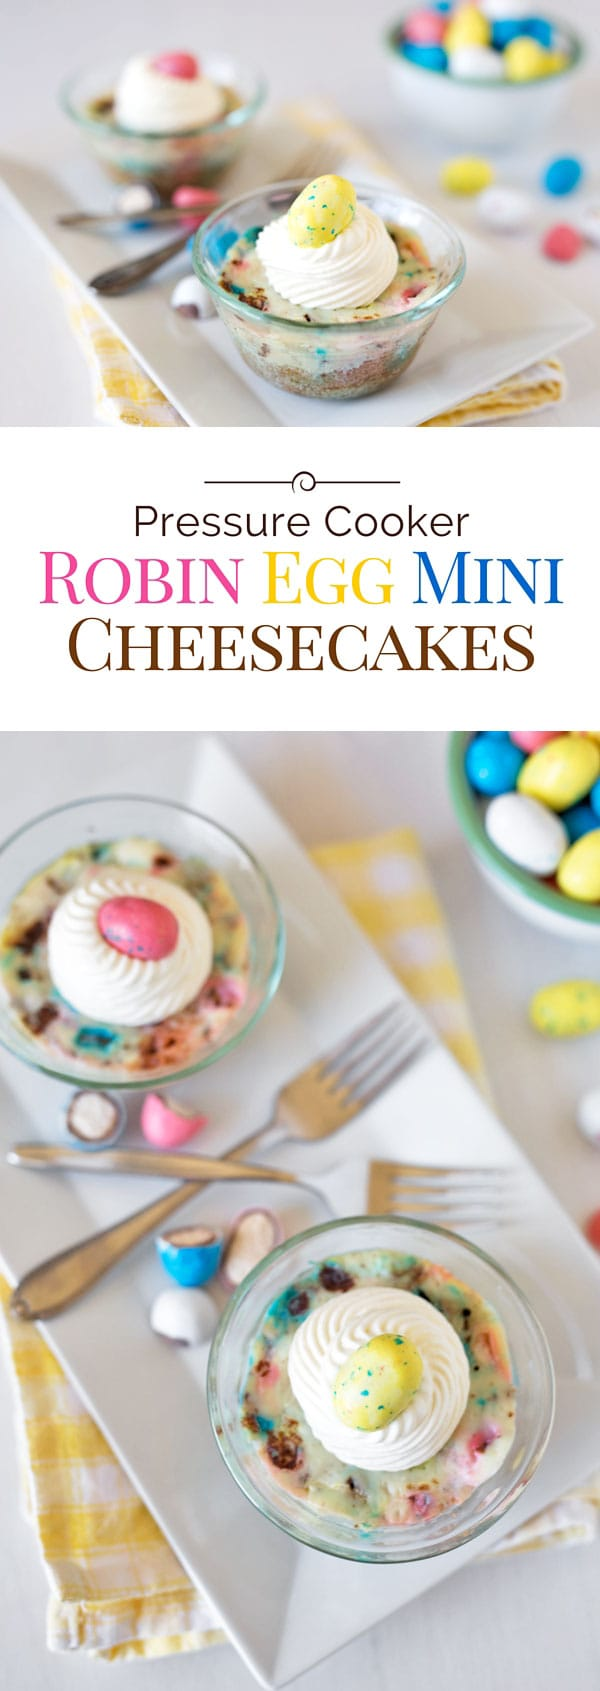 These Pressure Cooker Robin Egg Mini Cheesecakes are a rich, creamy New York style cheesecake loaded with colorful Easter malted milk ball candies.